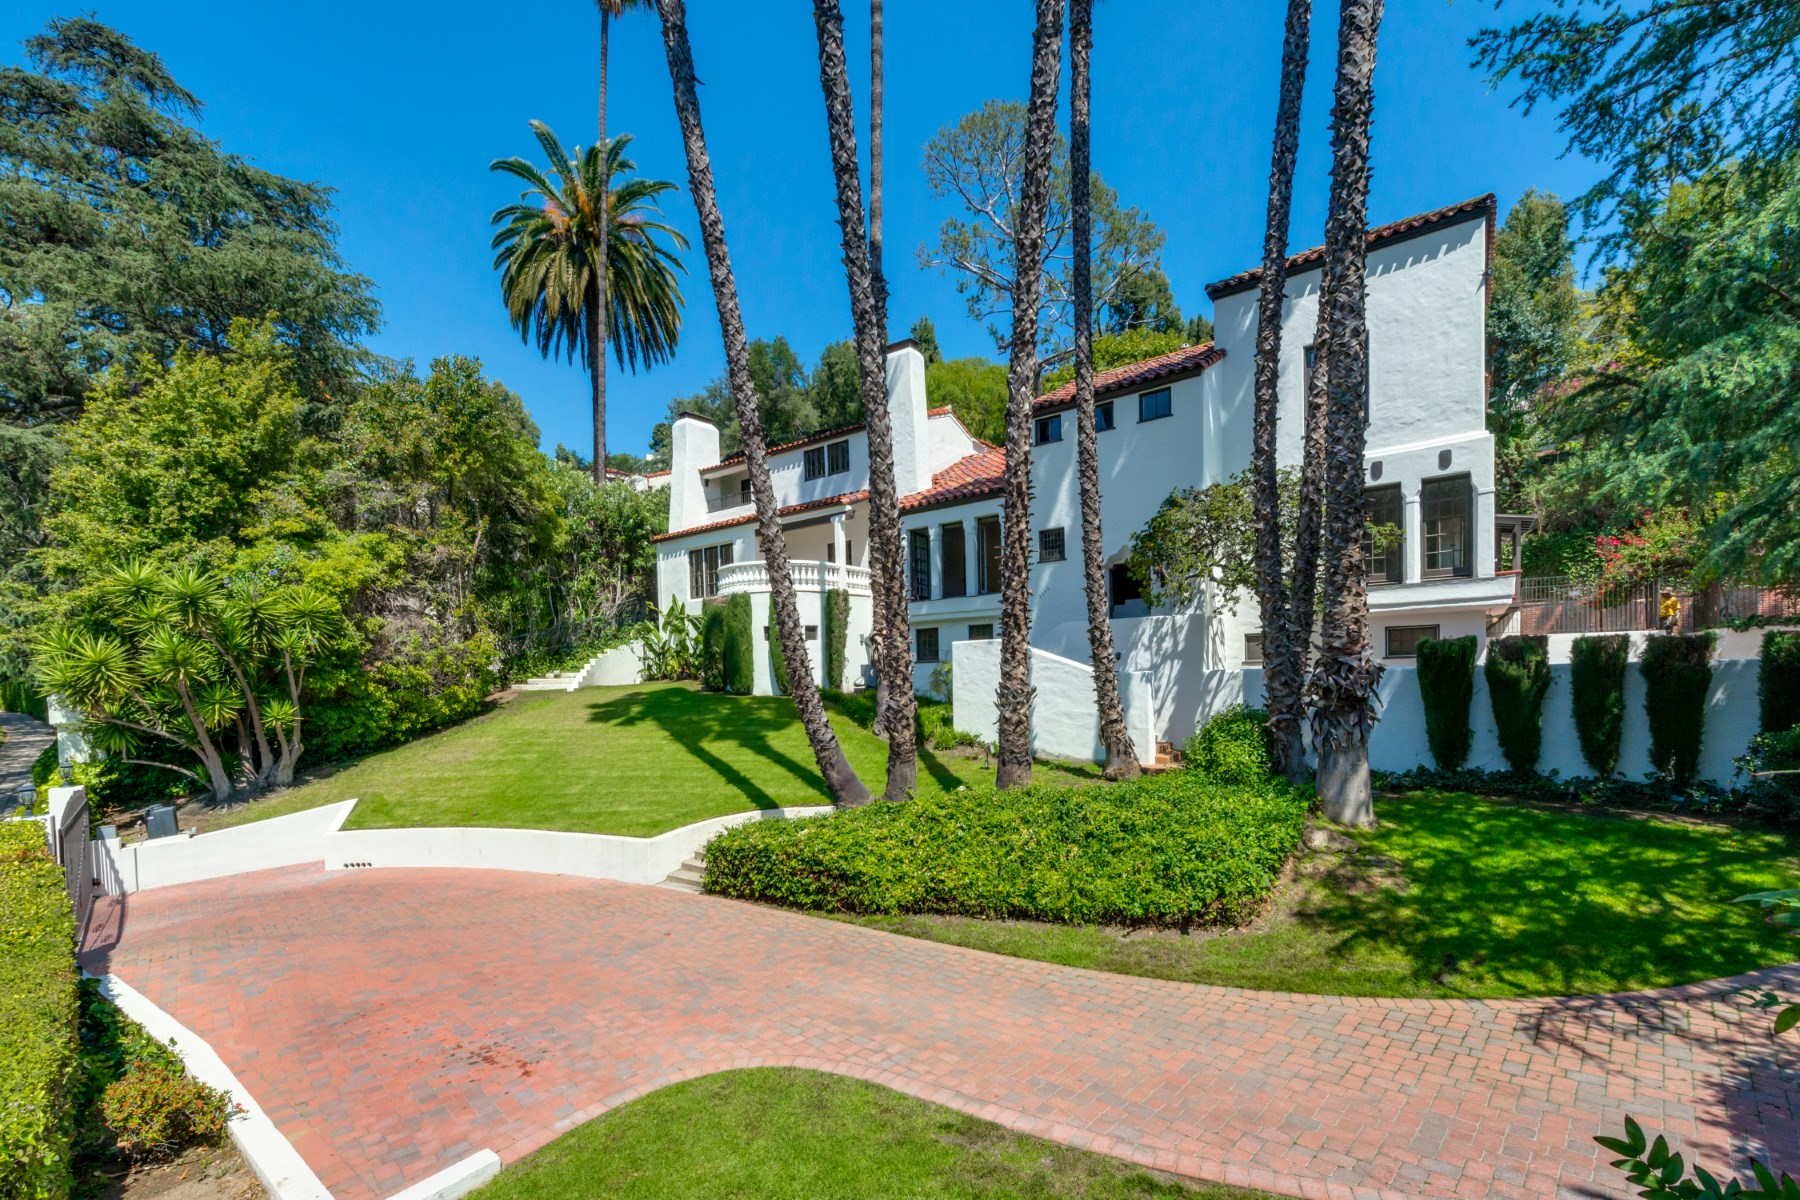 Single Family Home for Sale at 2556 Aberdeen Avenue Los Feliz, Los Angeles, California 90027 United States